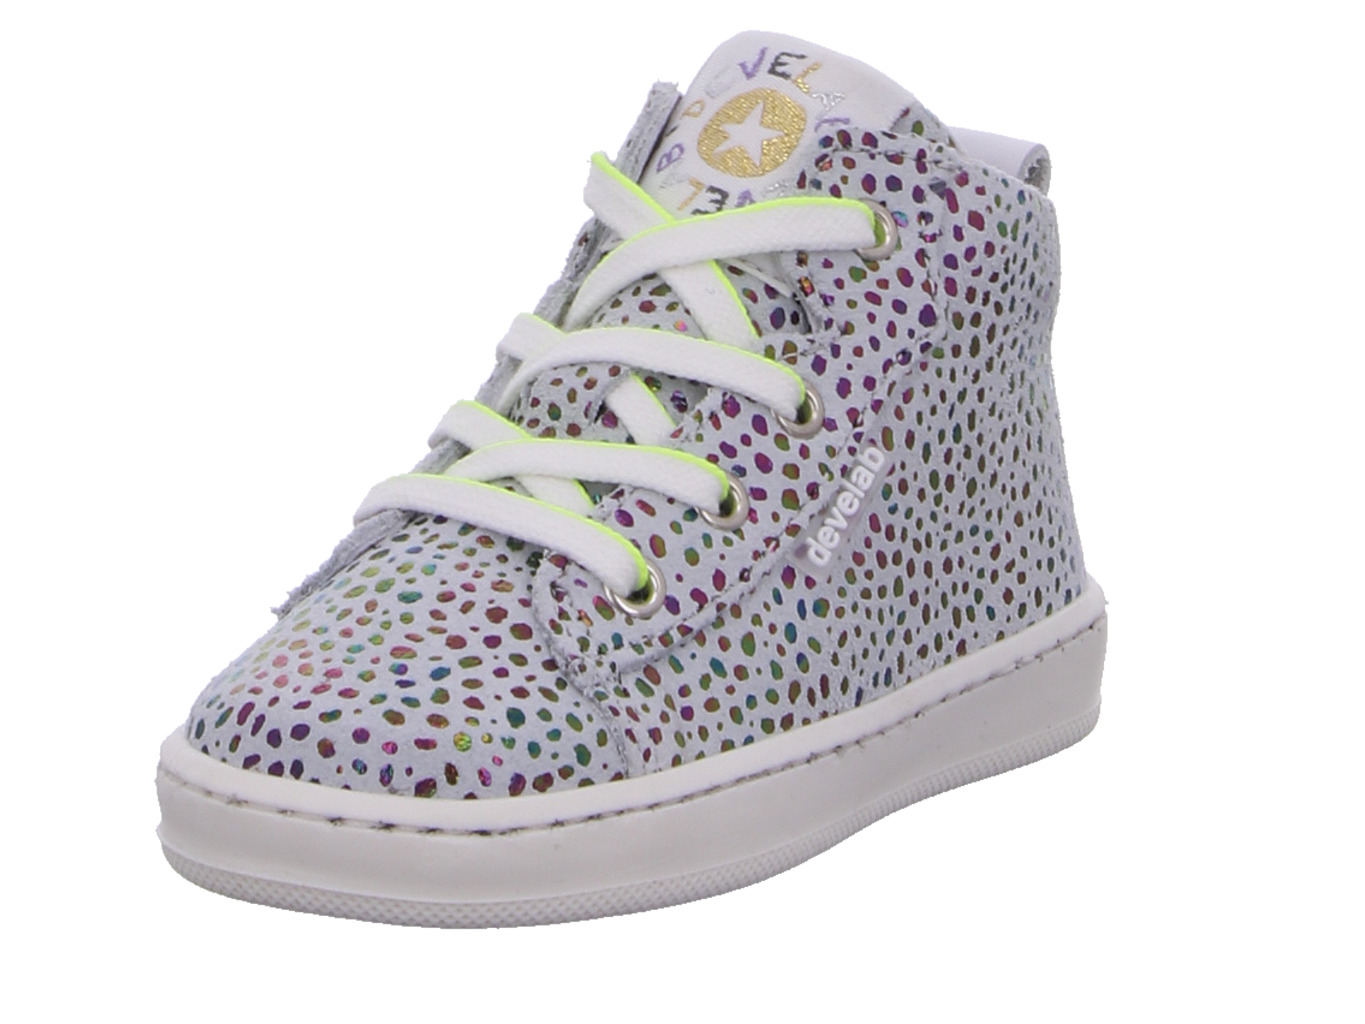 develab_girls_firststep_mid_cut_laces_41286_199_1215